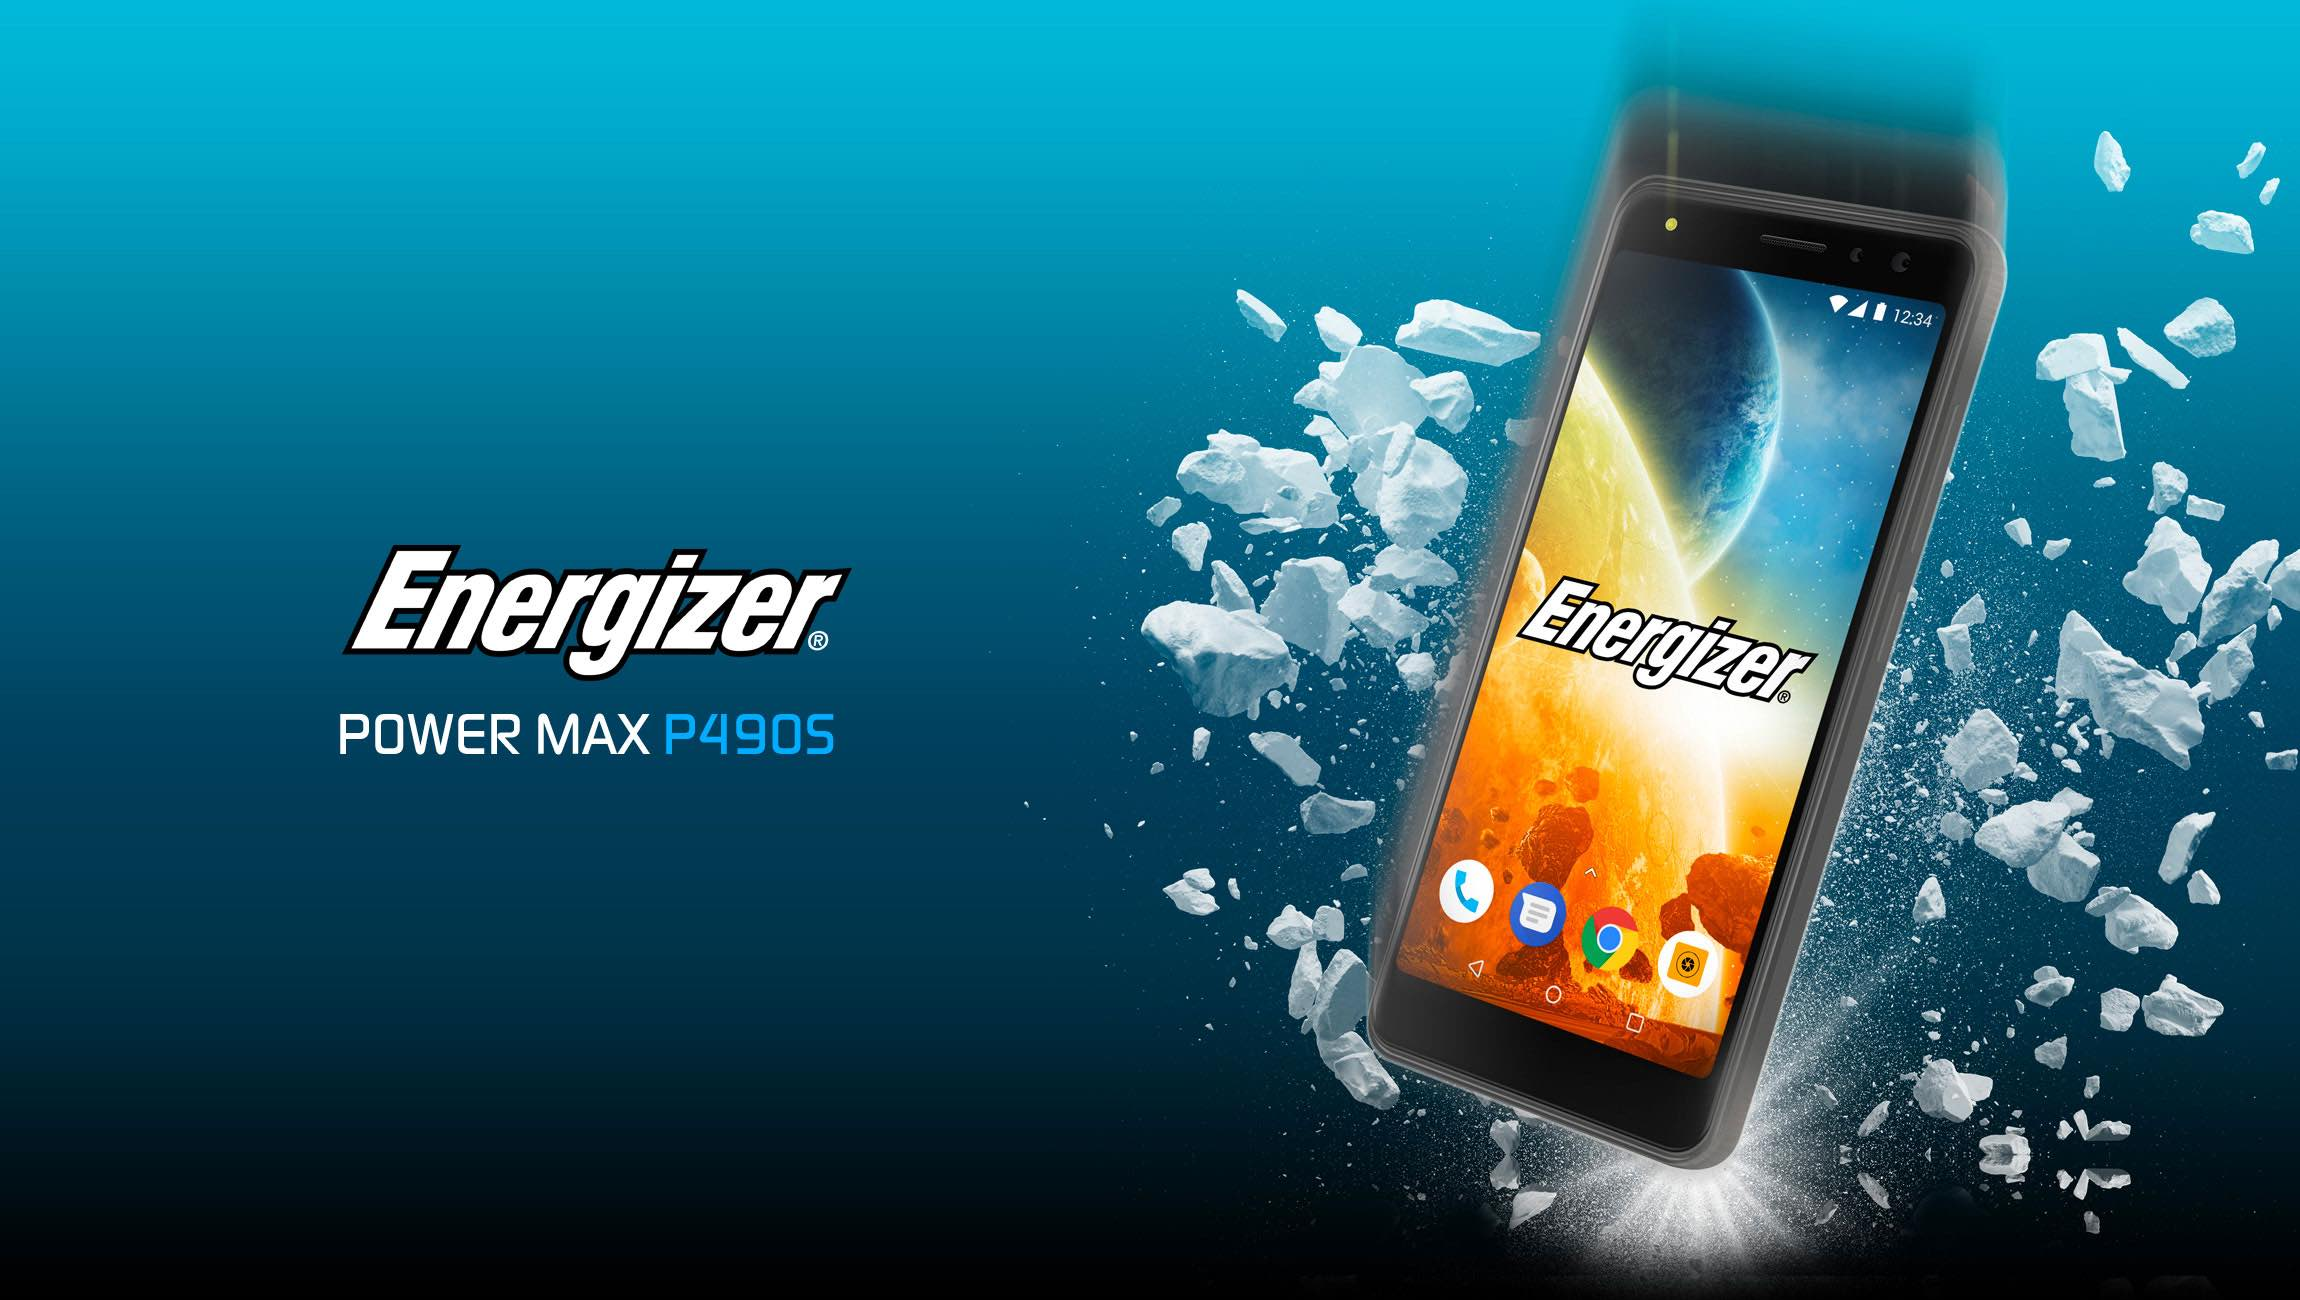 Introducing the Energizer Power Max P490S 4G smartphone